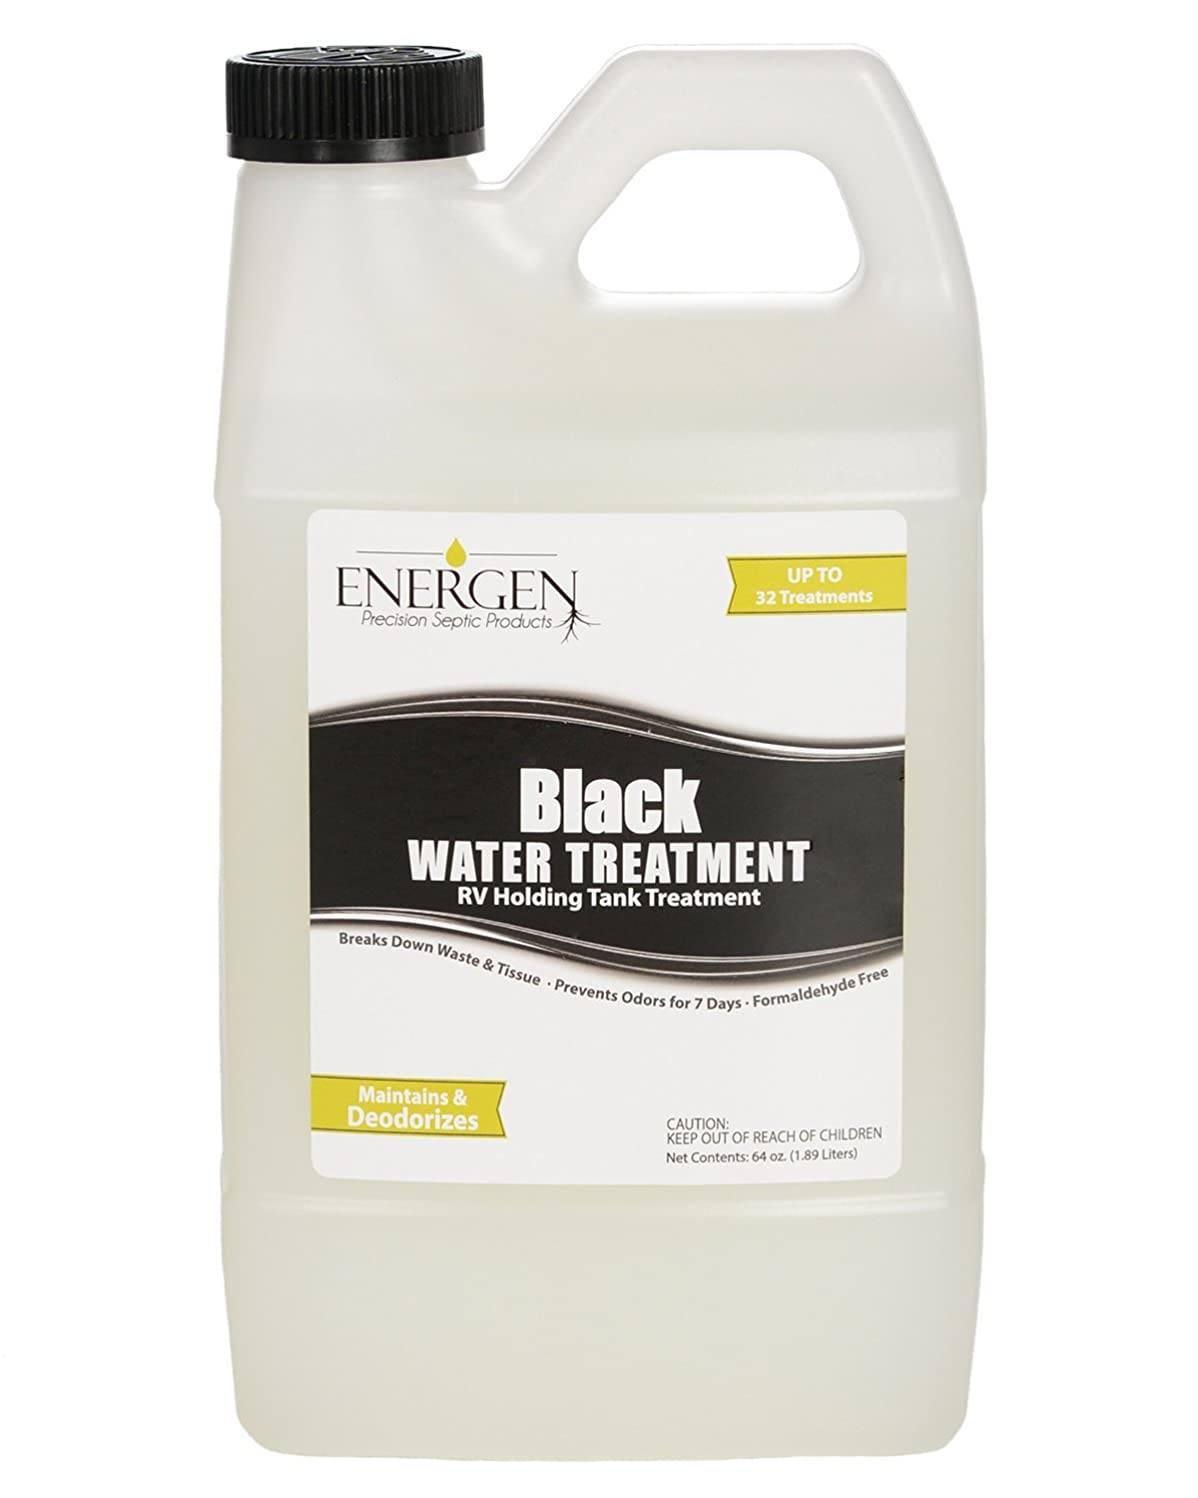 Energen Black Water Septic Tank Treatment - Deodorizing and Waste Digesting - RV Septic Tank Deodorizer - 64 Ounce